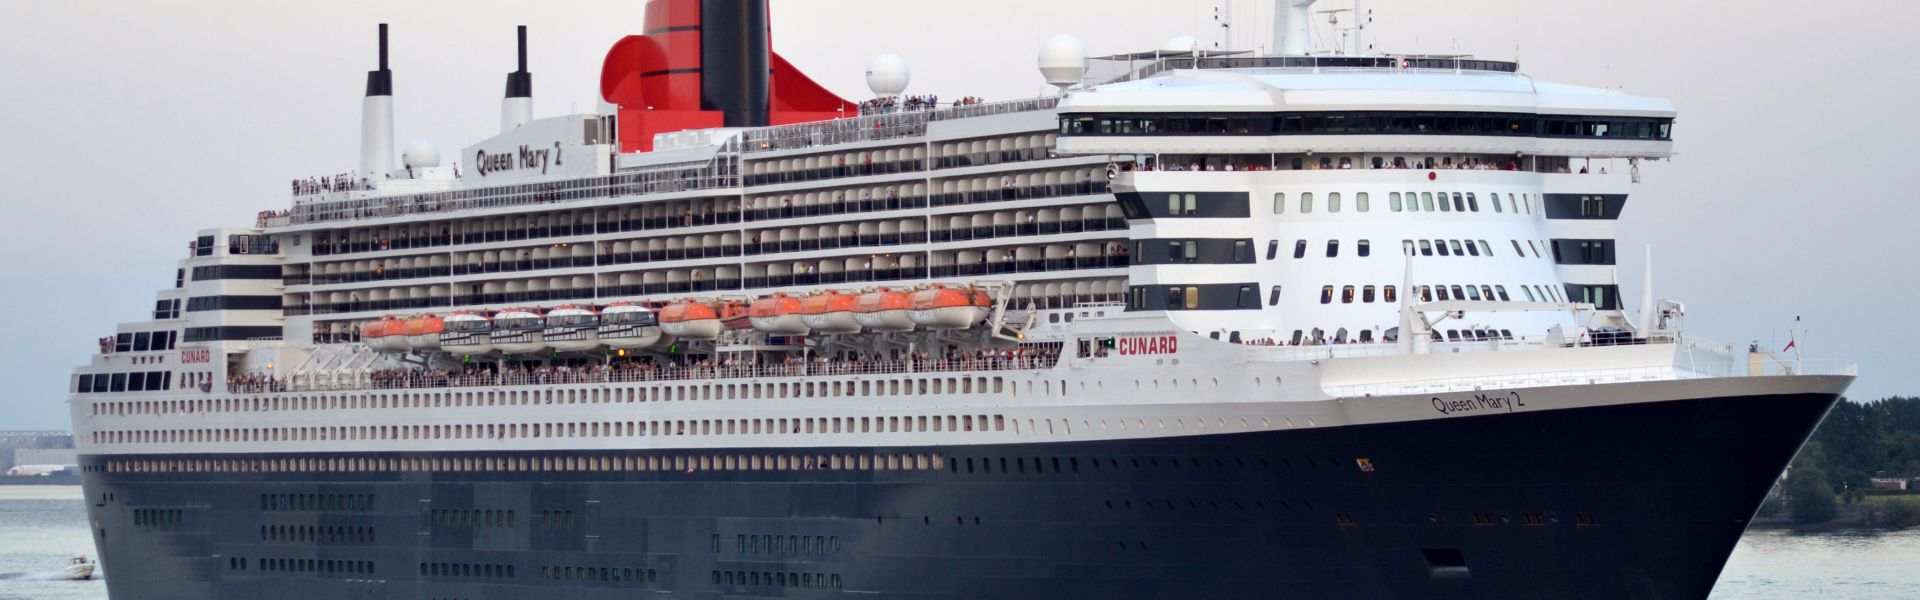 Croaziera 2018 - Transatlantic si Repozitionari (New York) - Cunard Line - Queen Mary2 - mai-dec - 7 nopti